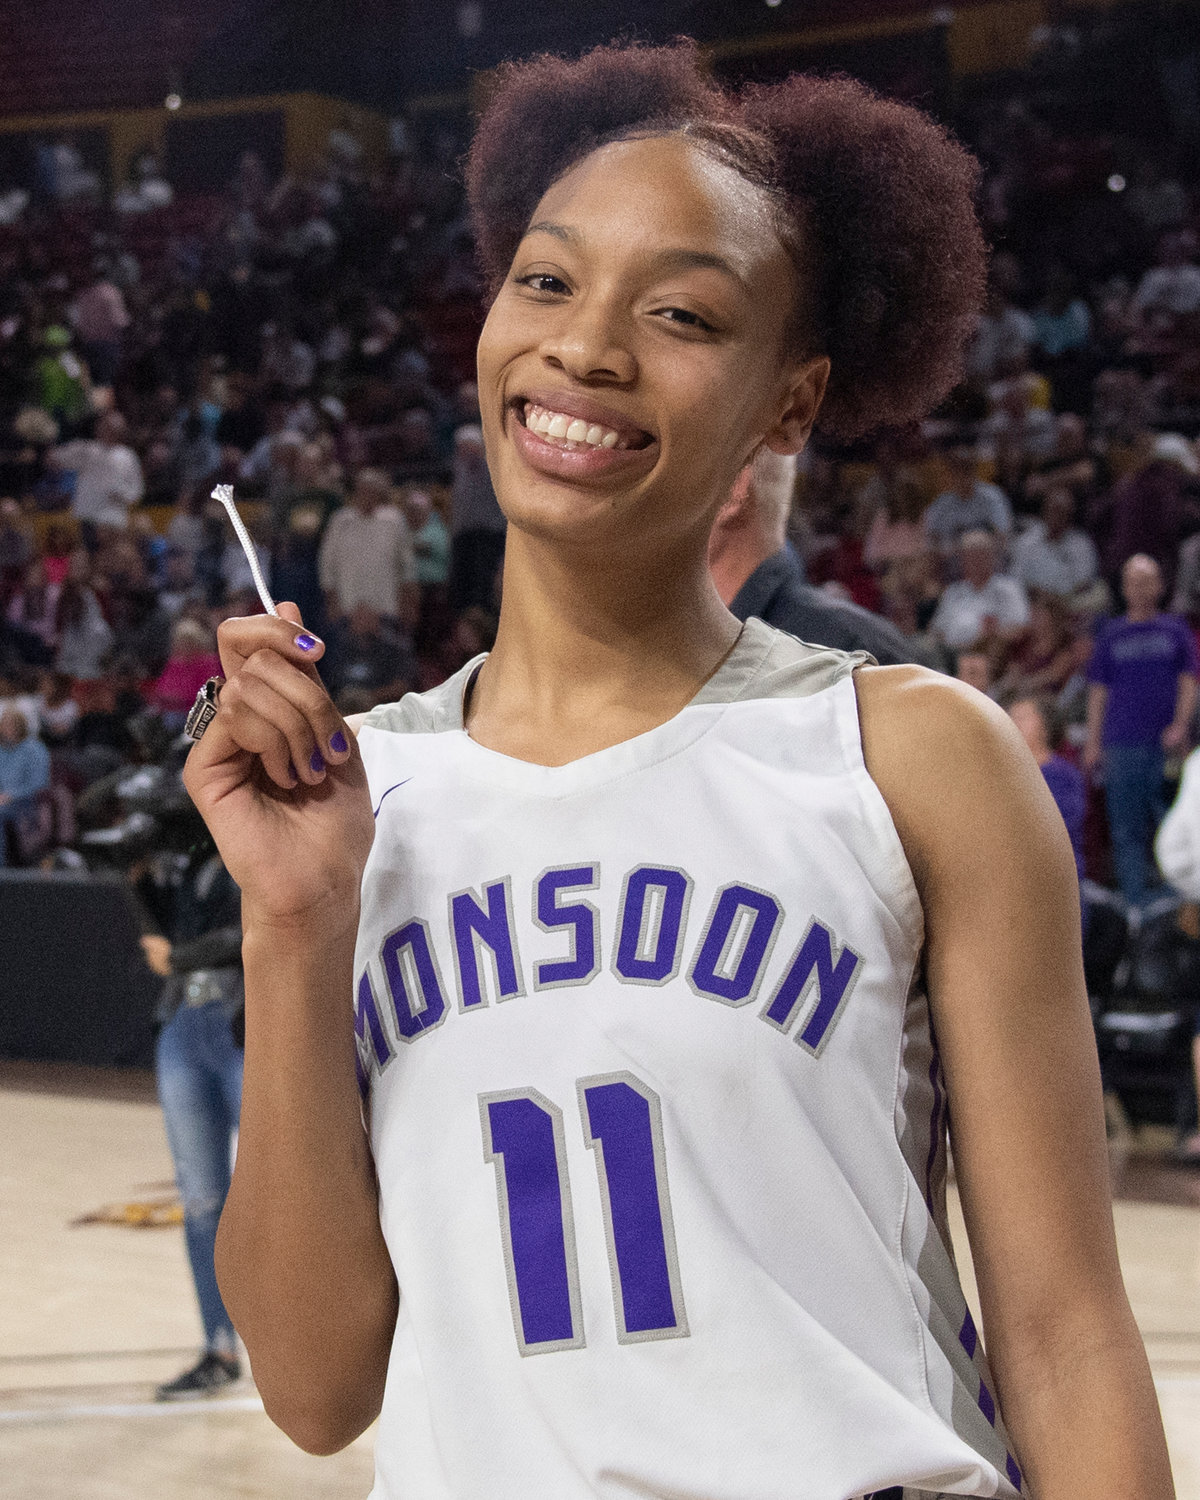 Valley Vista junior Marisa Davis smiles and holds up a strand of the net March 3 after the Monsoon defeated Chandler Hamilton to win the 6A state girls basketball title at Desert Financial Arena in Tempe.